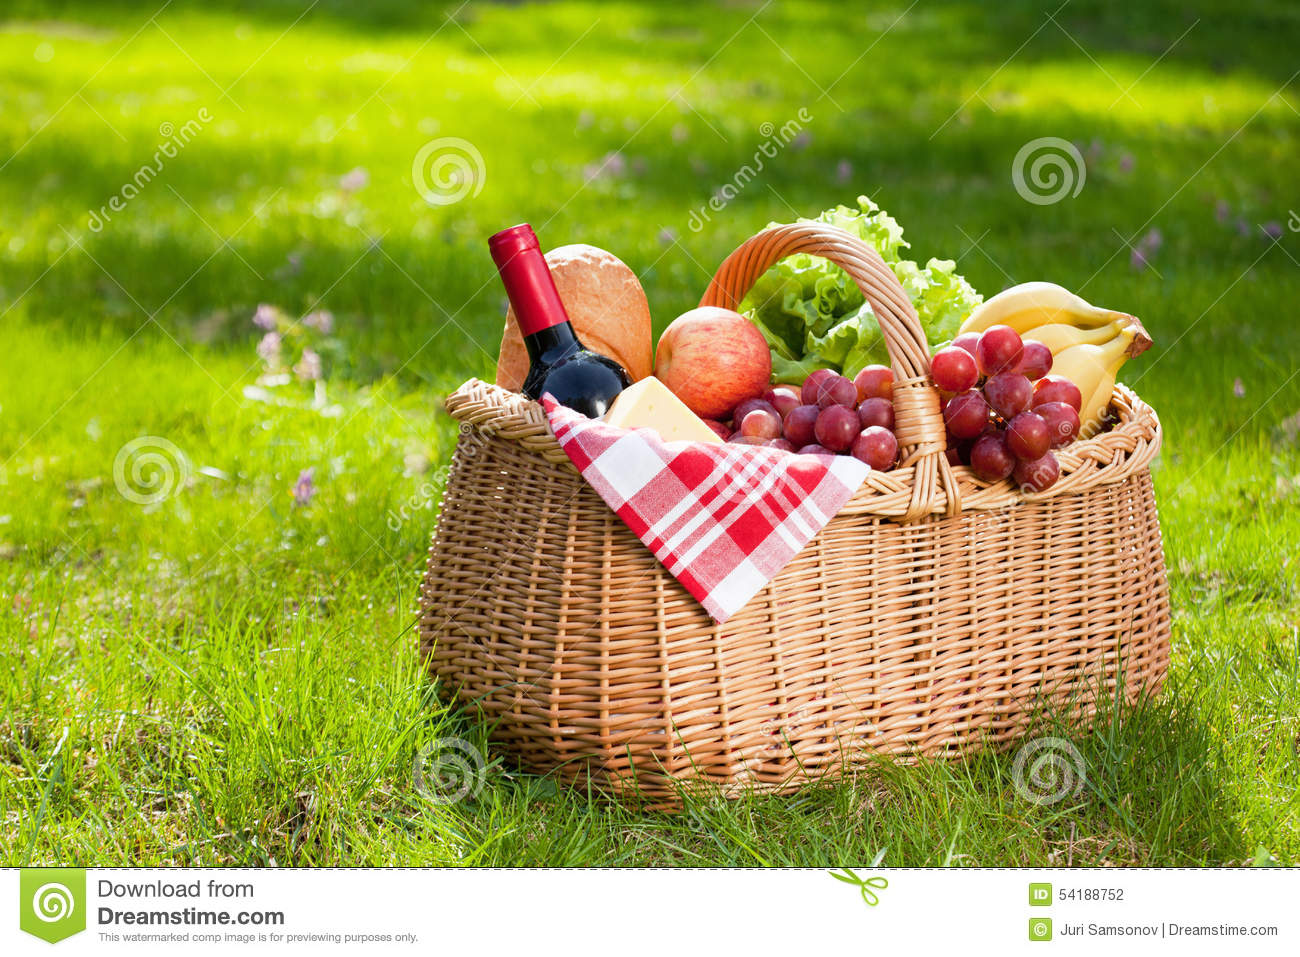 Picnic Basket With Food On Green Grass Stock Photo